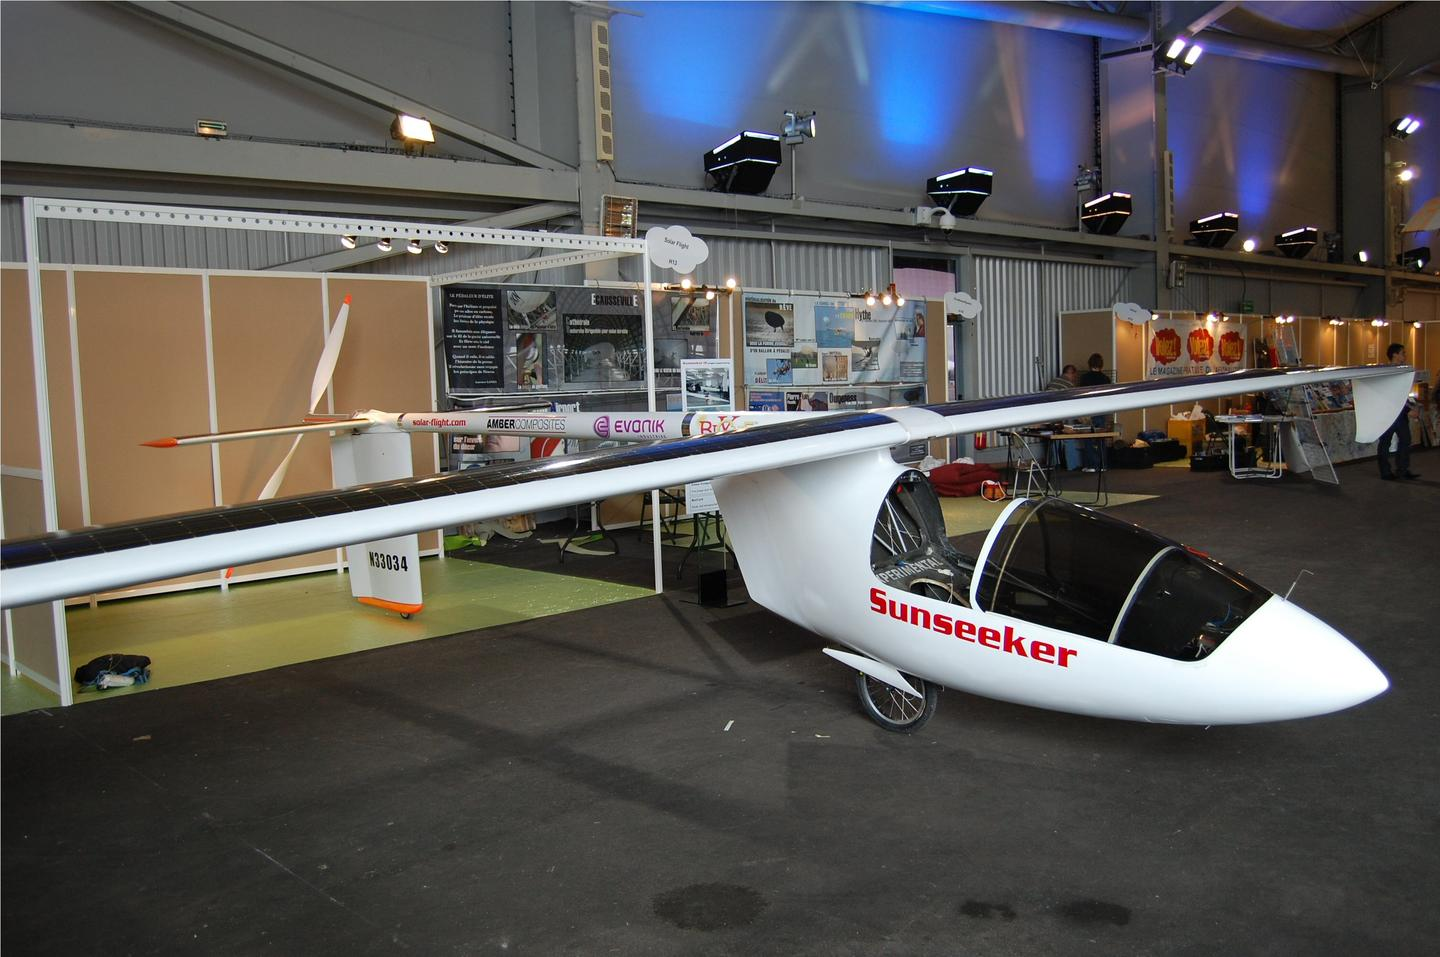 The Sunseeker II solar-powered airplane on display at the Green Air Show in Paris